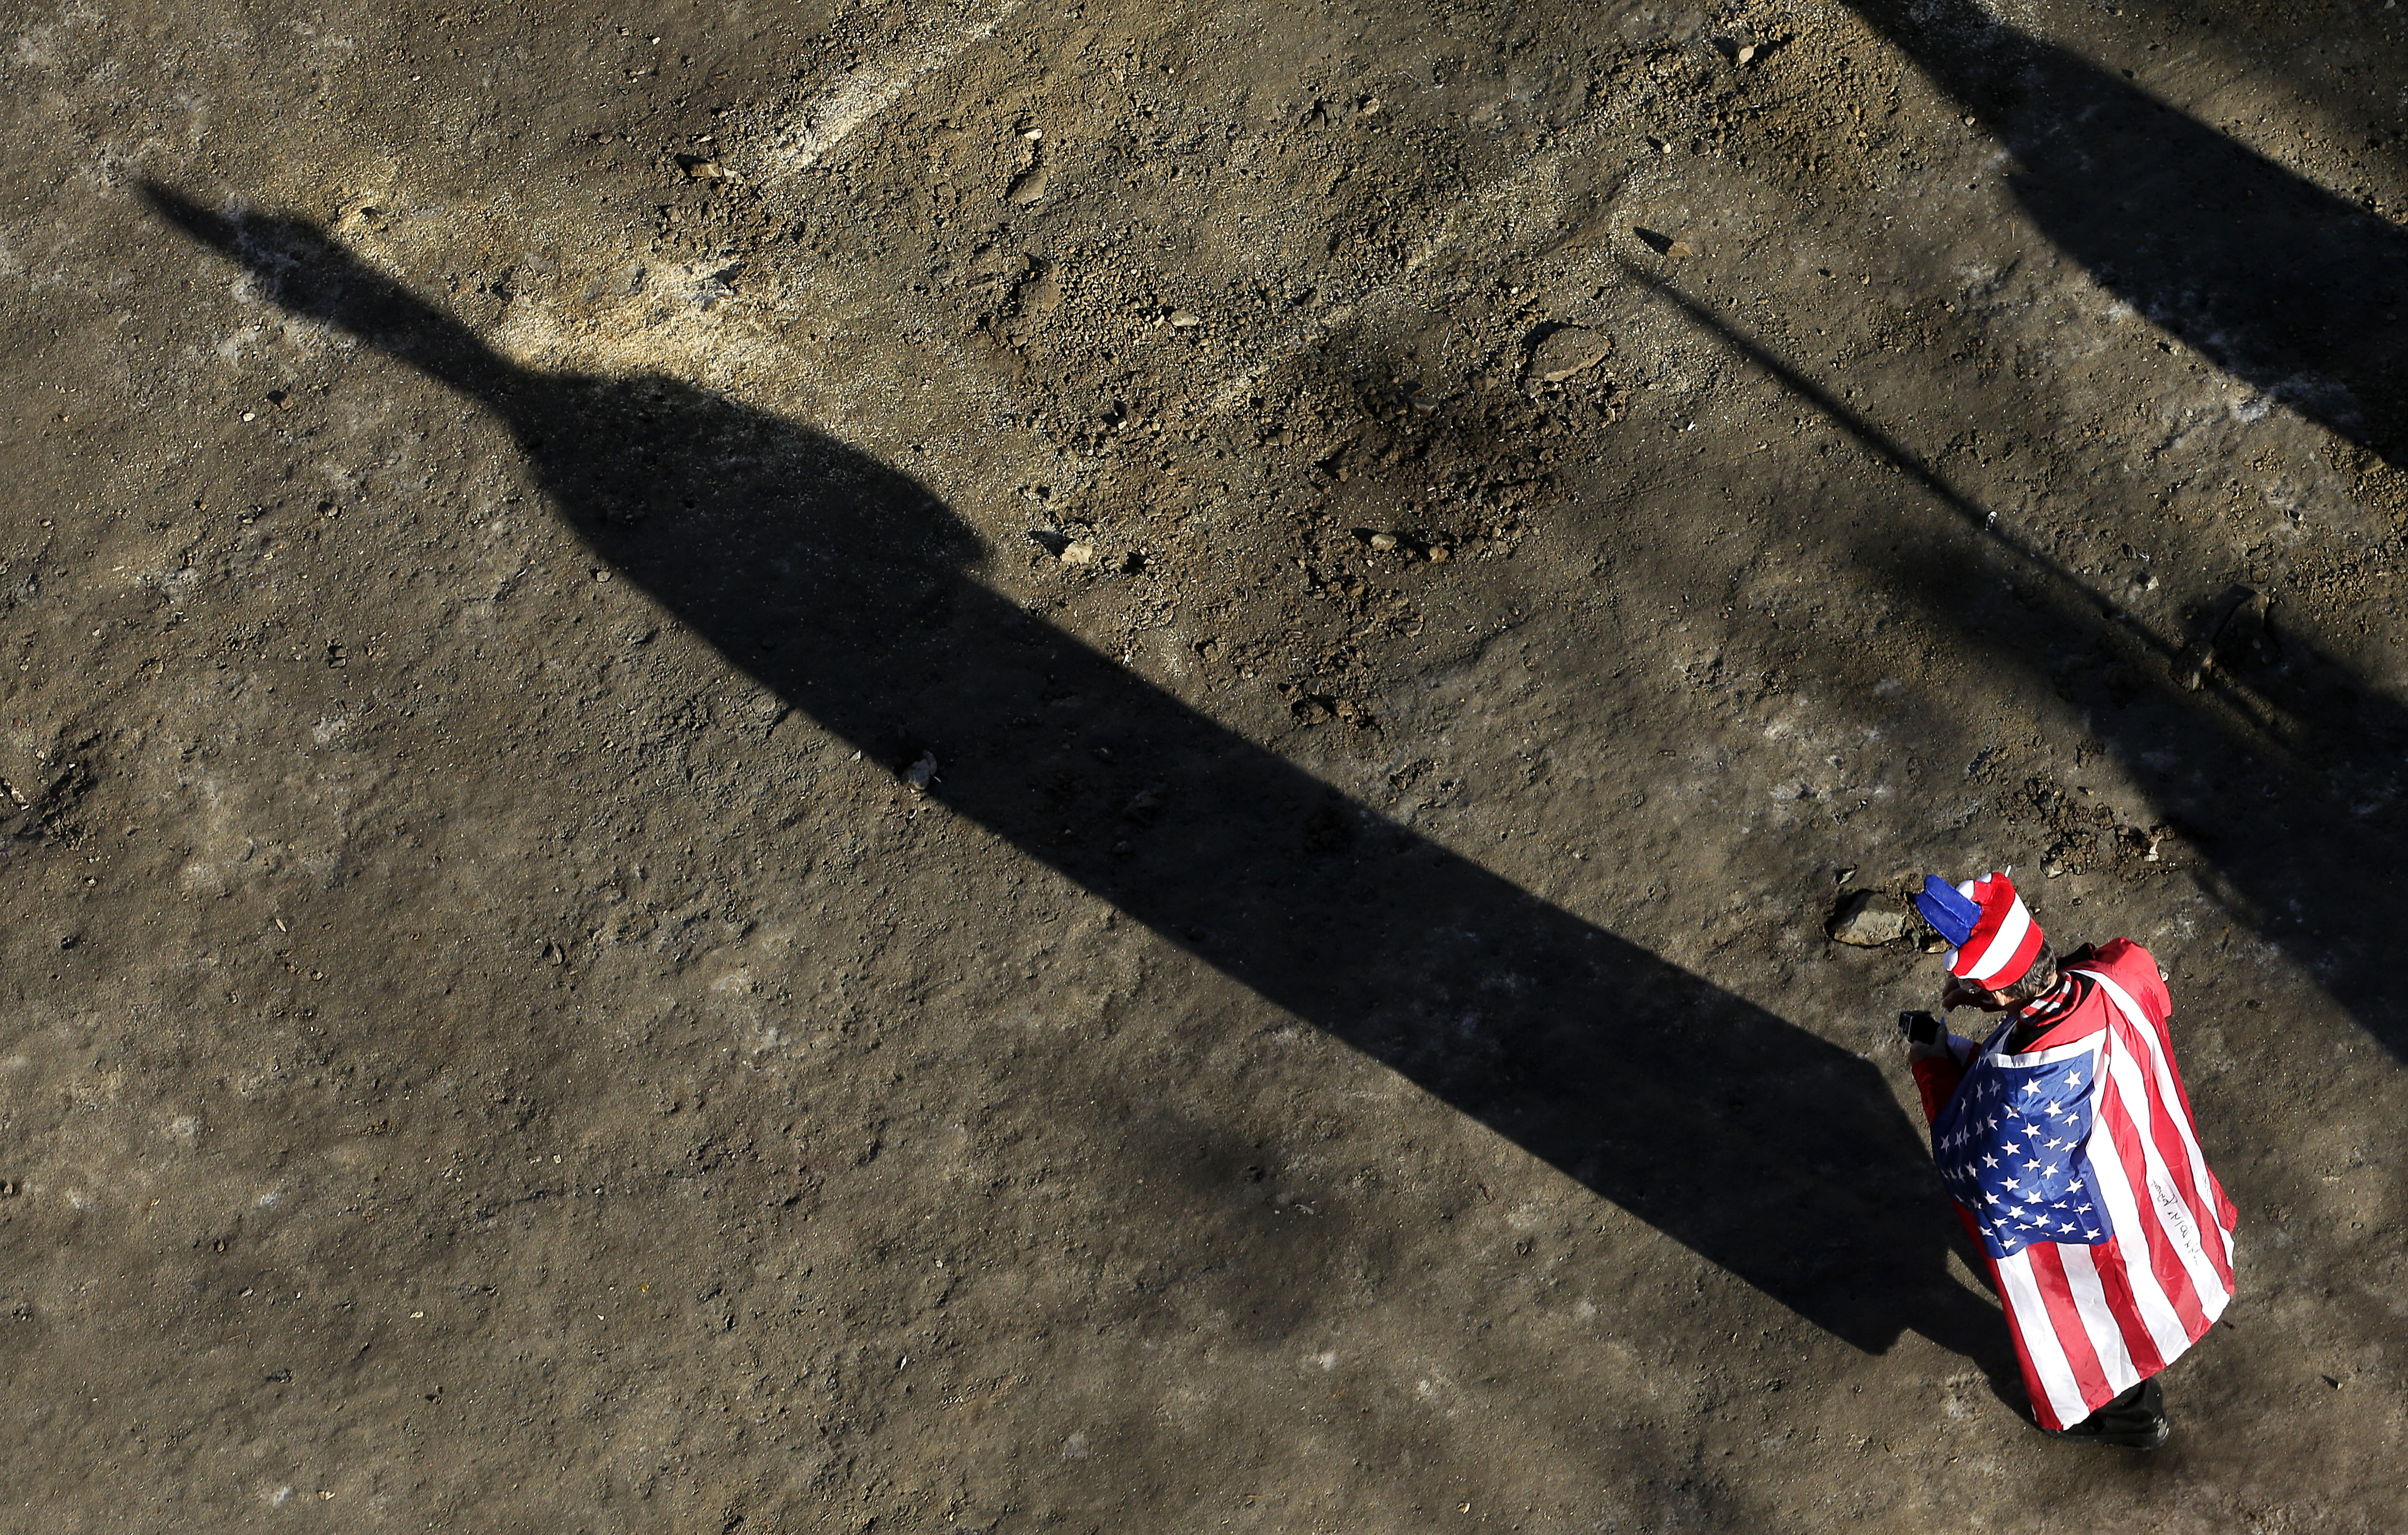 A fan wearing an United States flag arrives at the women's downhill competition at the 2014 Winter Olympics, Wednesday, Feb. 12, 2014, in Krasnaya Polyana, Russia. (AP Photo/Charlie Riedel)